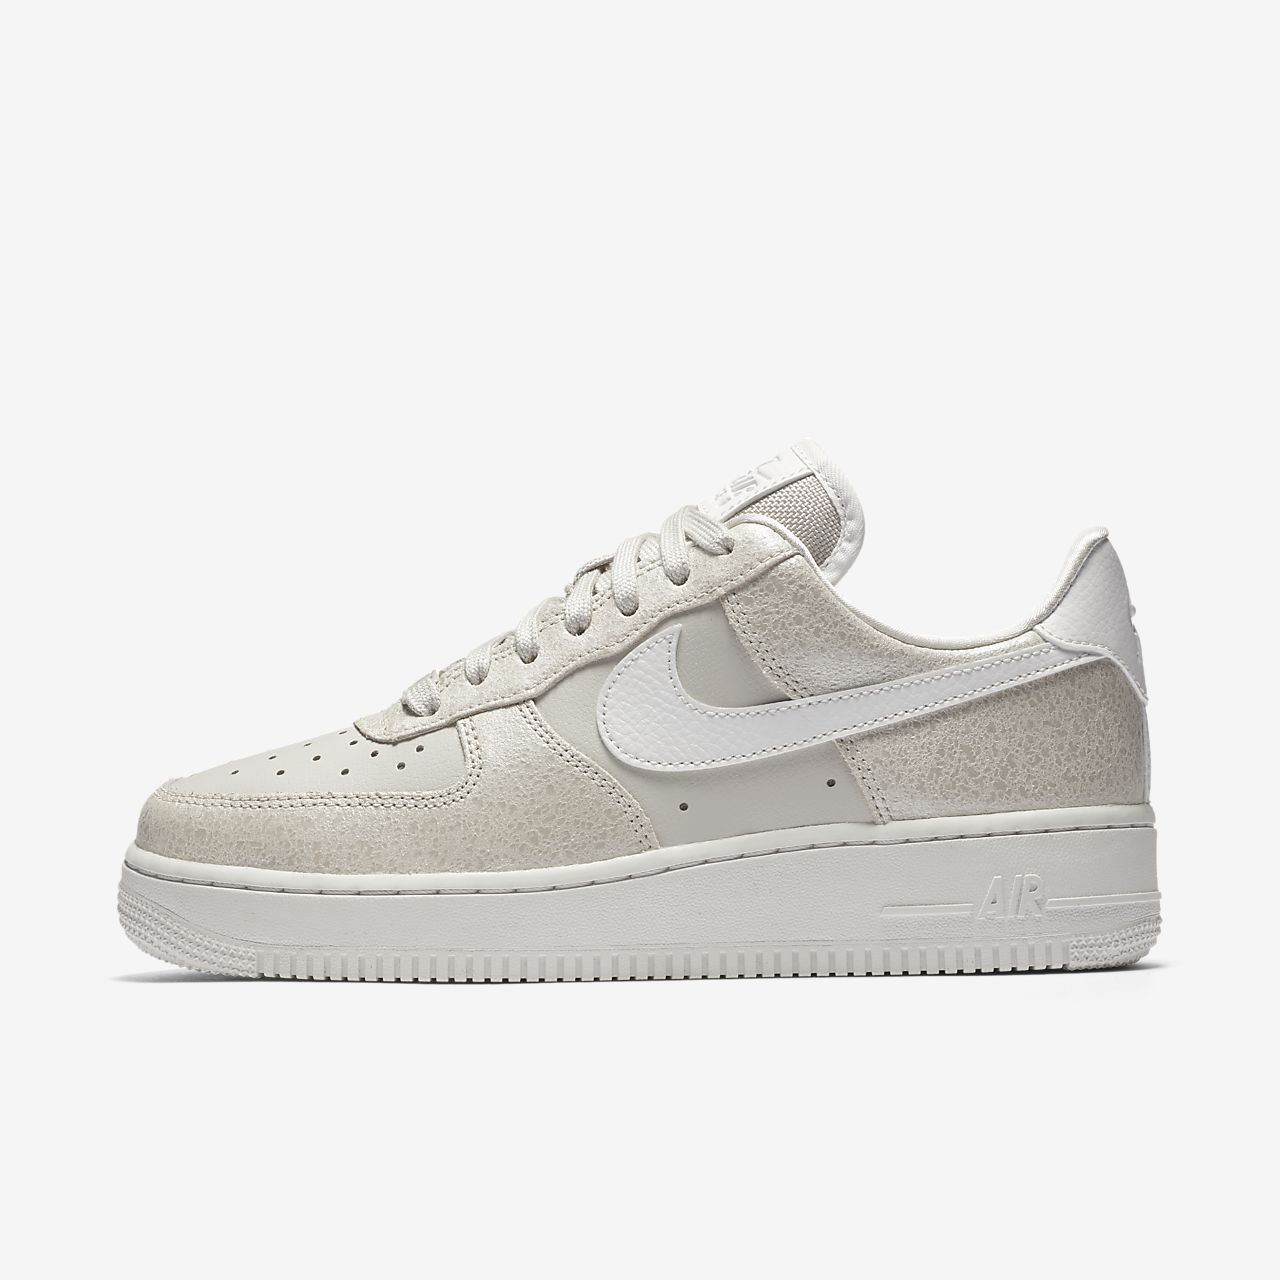 timeless design 4a977 d24e3 nike air force 1